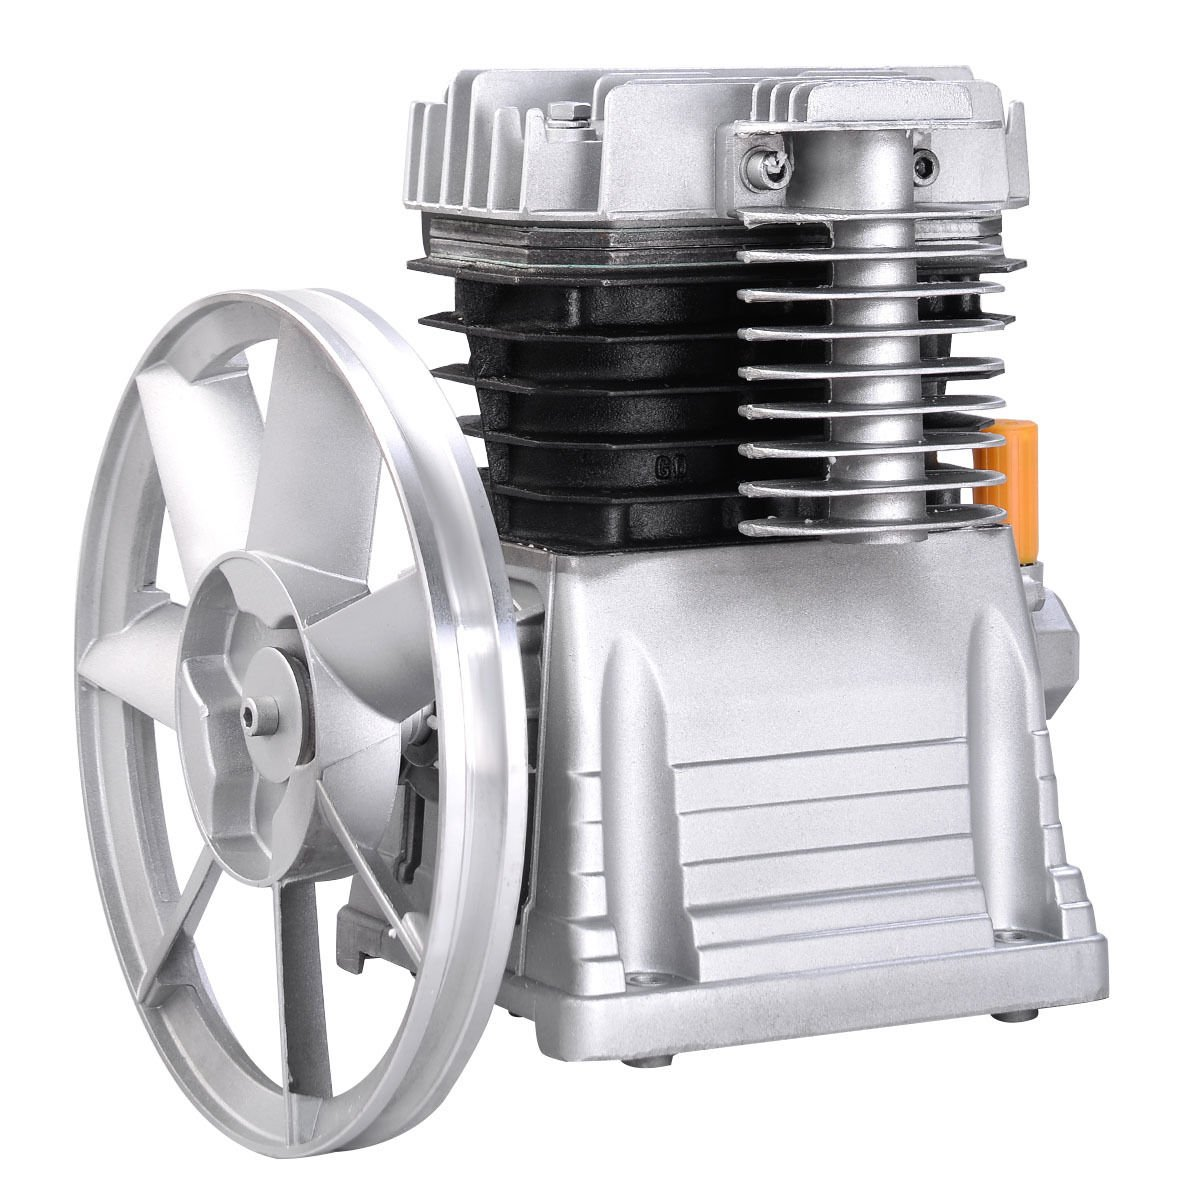 amazon com air compressor replacement parts tools home improvement goplus new aluminum 3hp air compressor head pump motor 145psi 11 5cfm